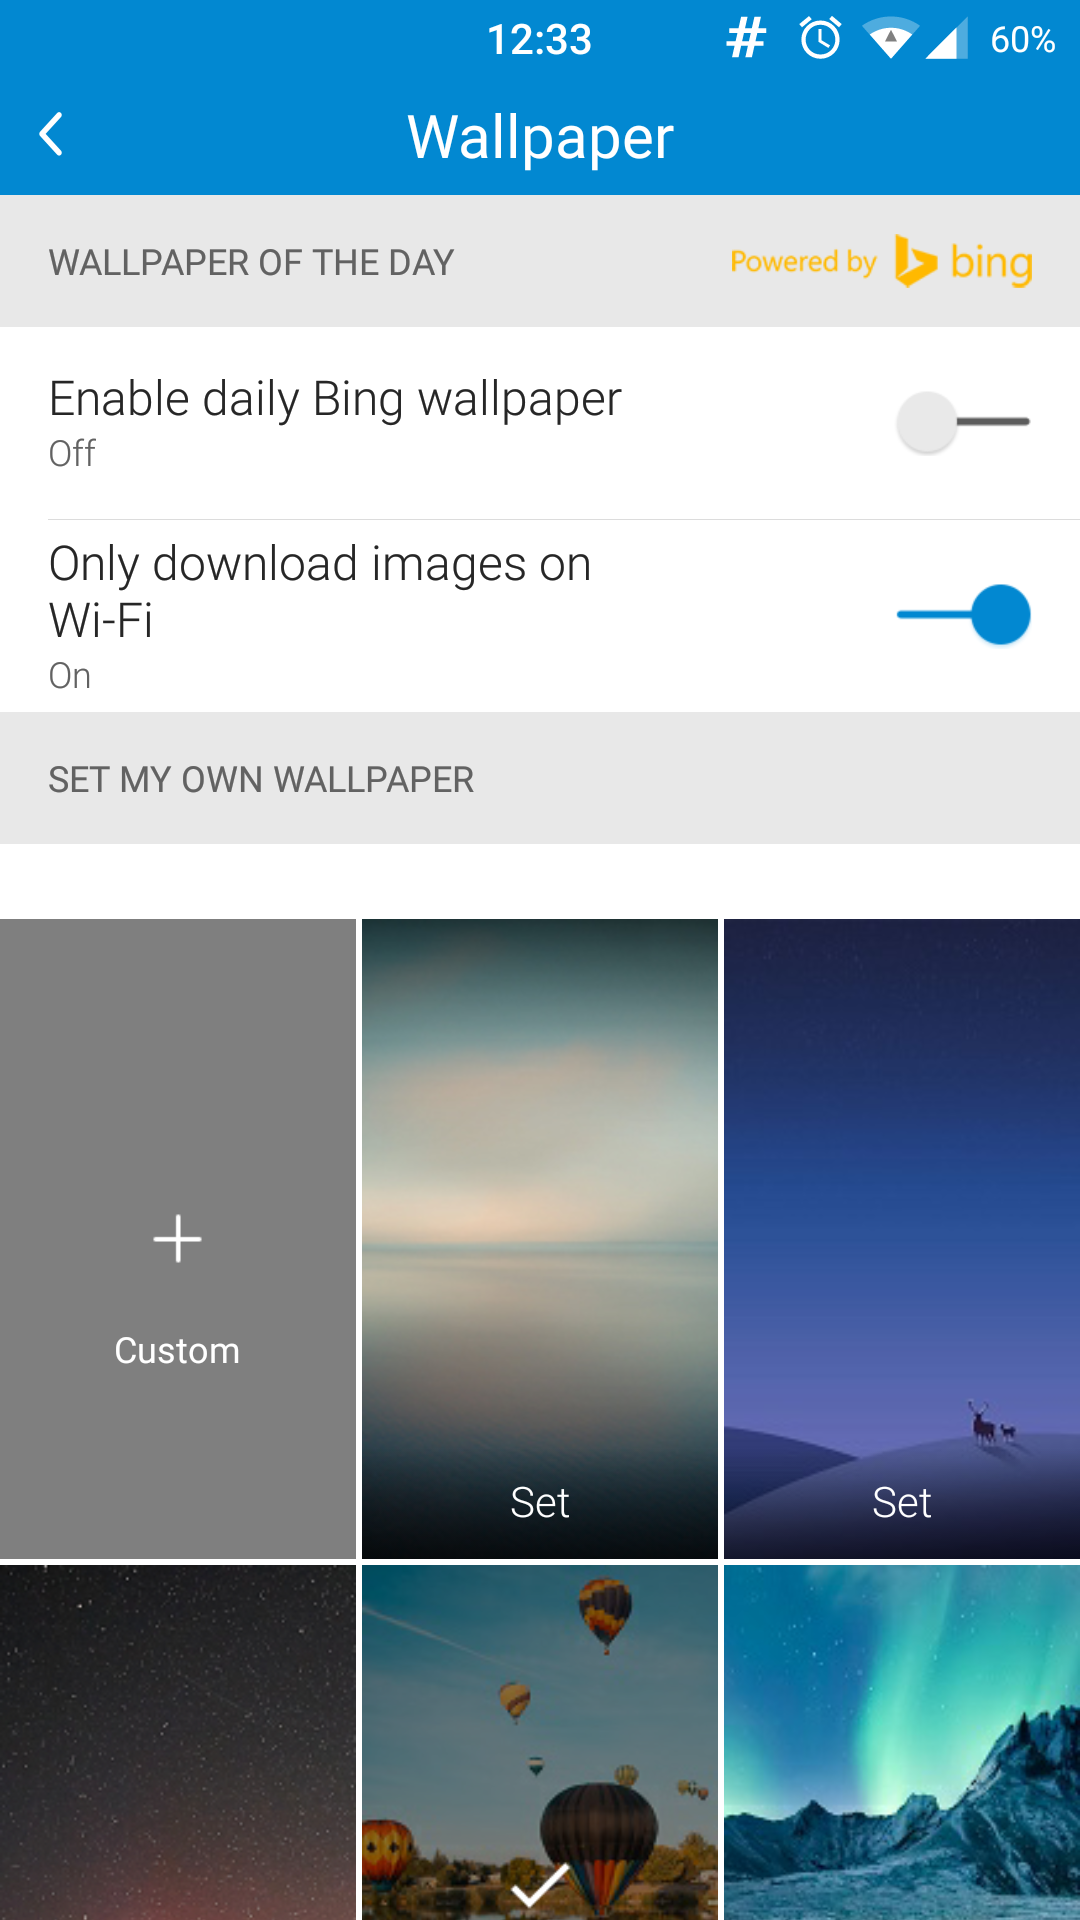 microsoft arrow launcher bing wallpaper microsoft arrow launcher for android is now available for all